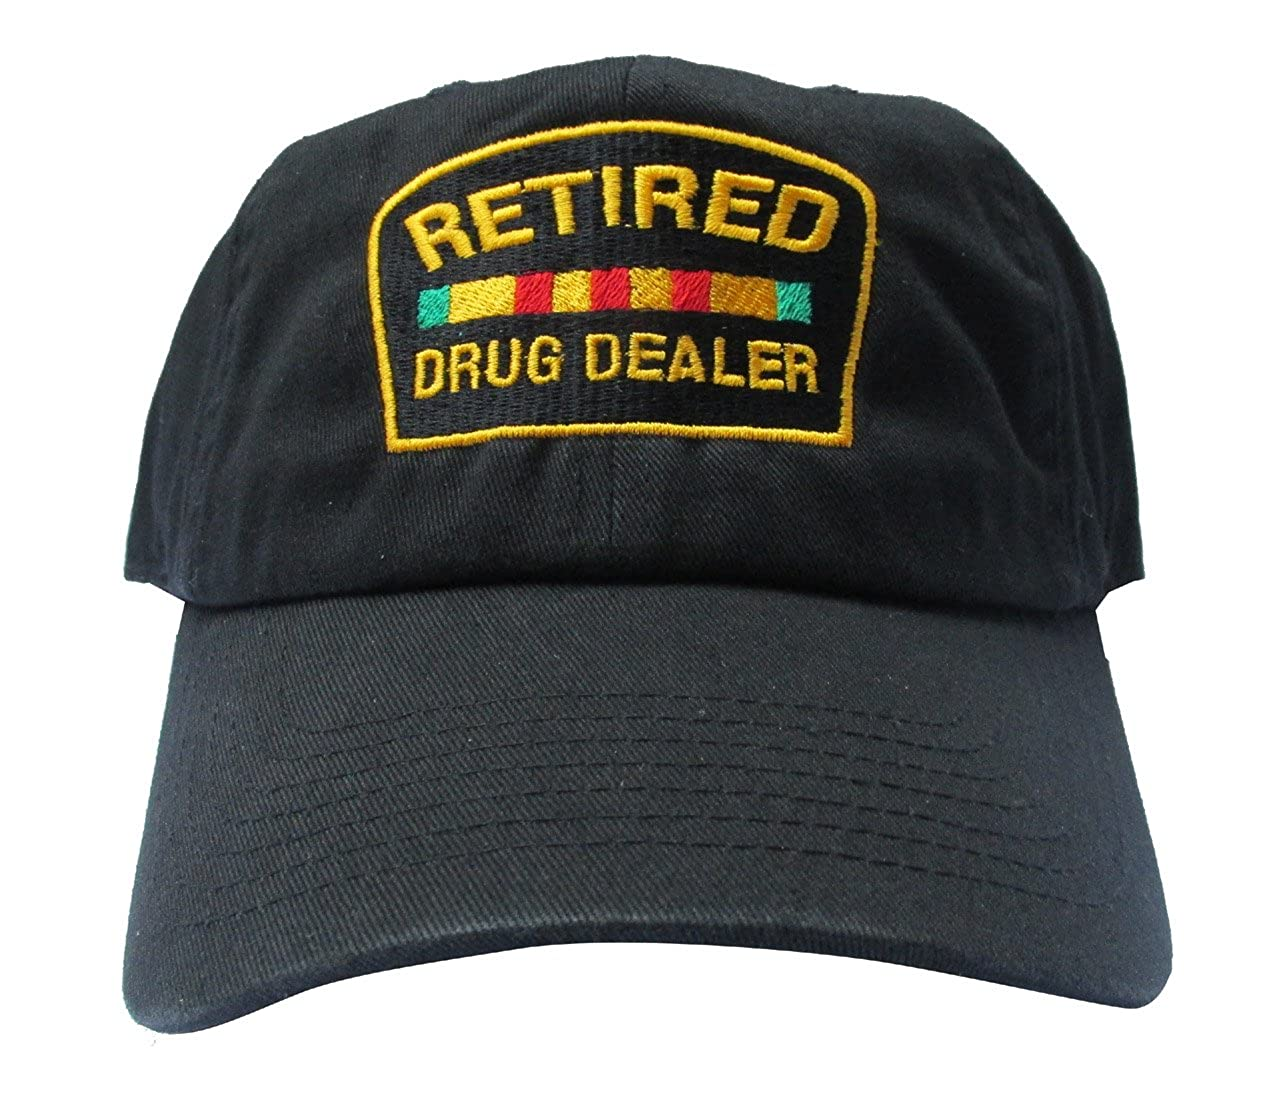 Rob sTees Retired Drug Dealer Black Meme Unstructured Twill Cotton Low  Profile Dad Hat Cap at Amazon Men s Clothing store  636ecef00c8f